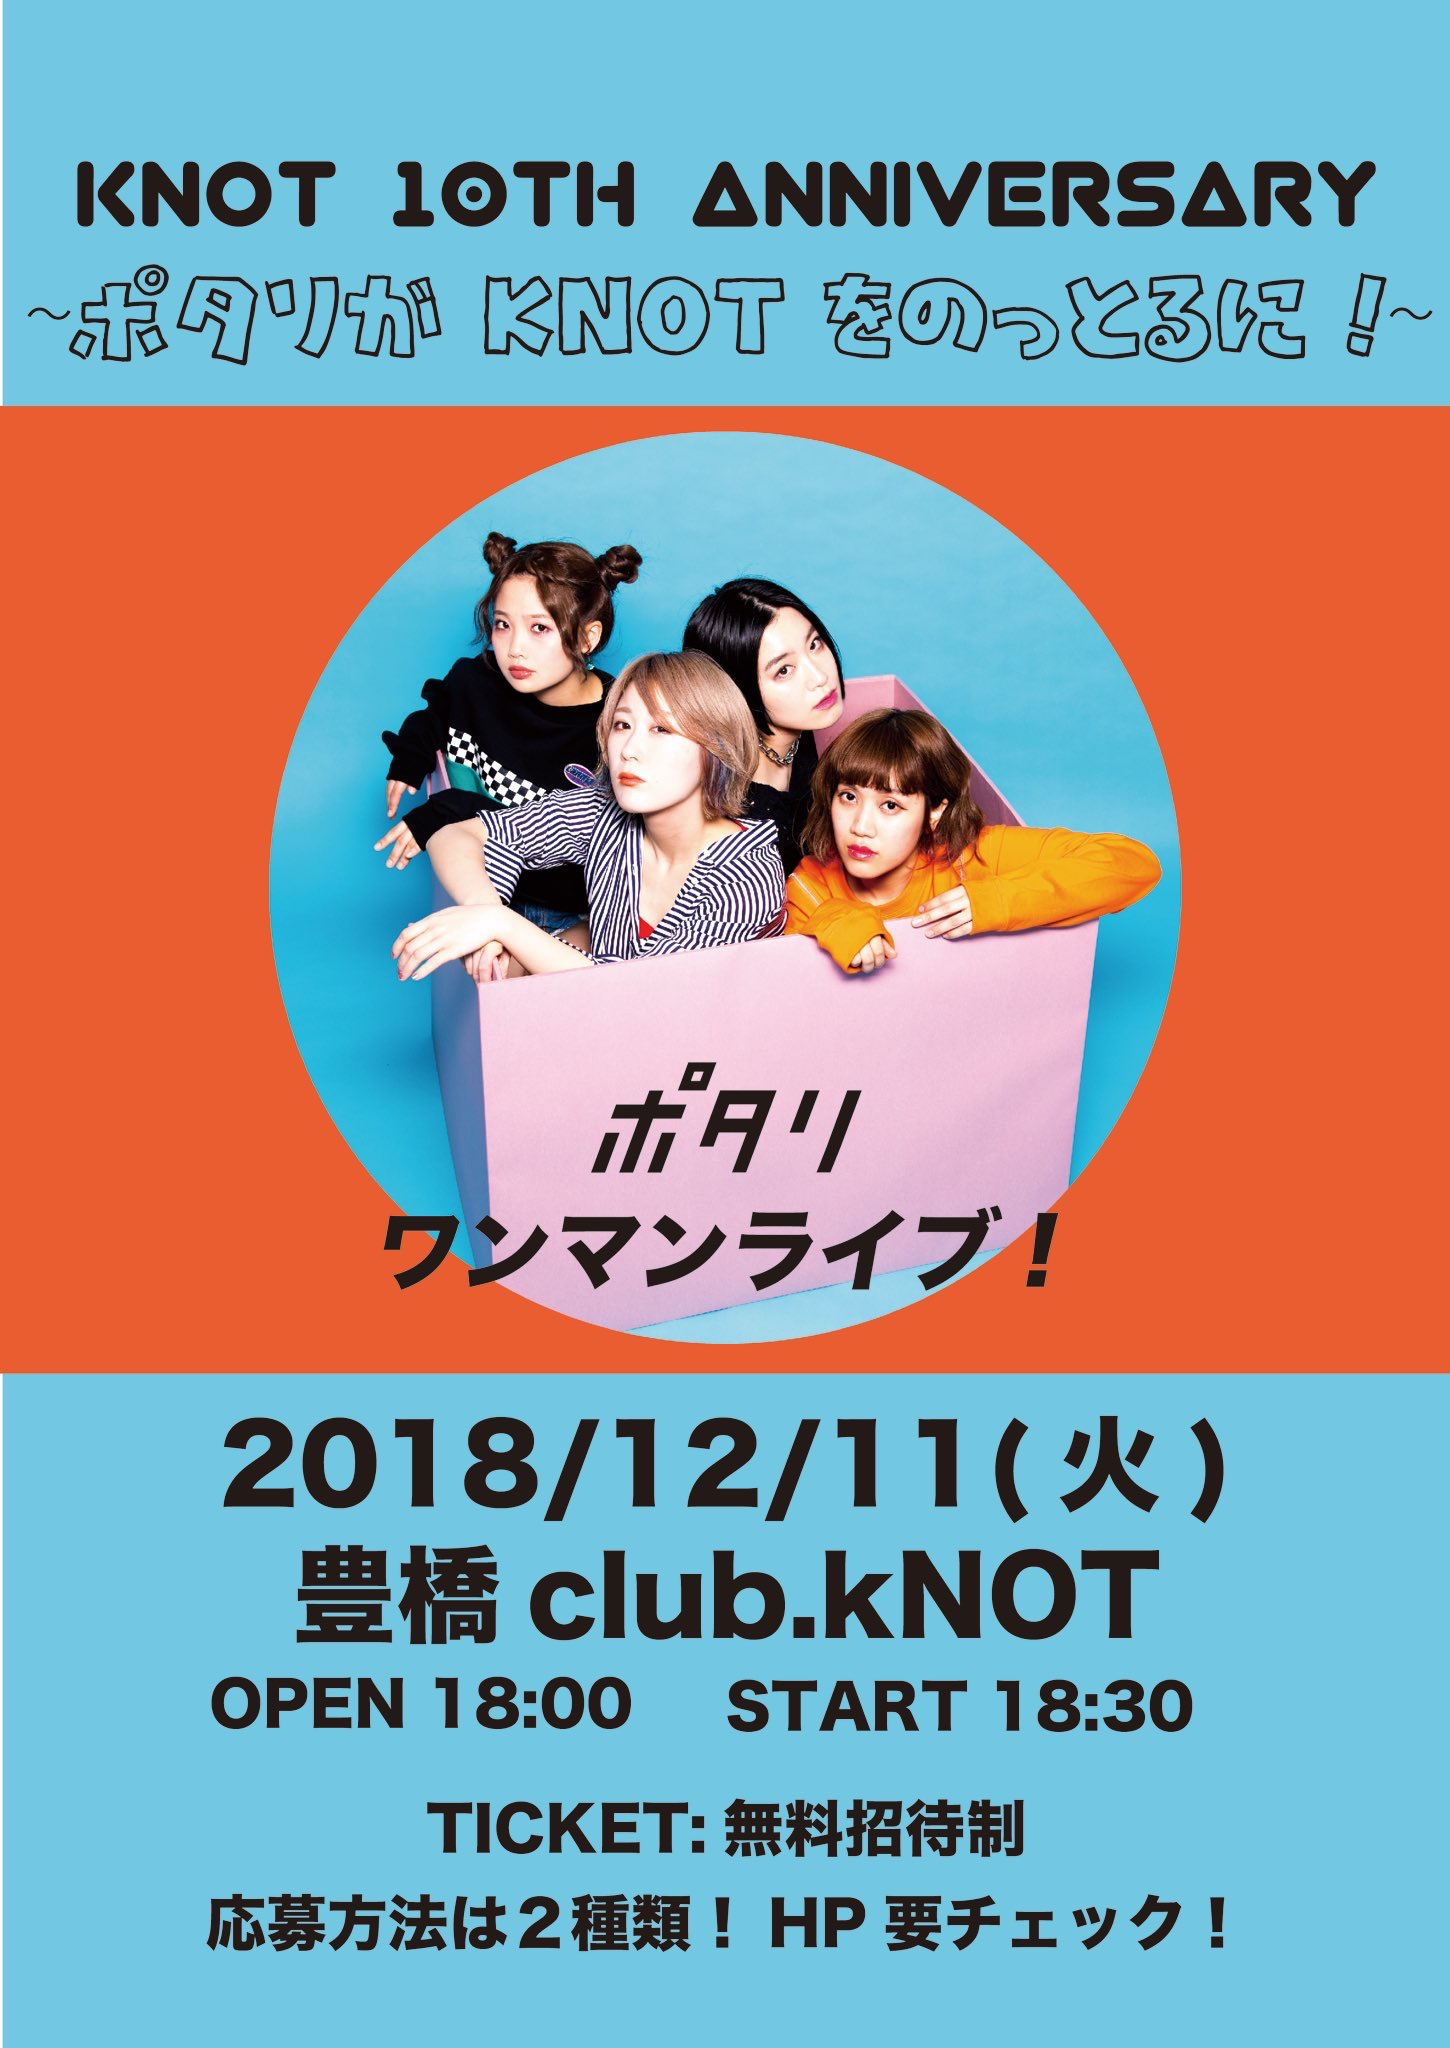 KNOT 10TH ANNIVERSARY